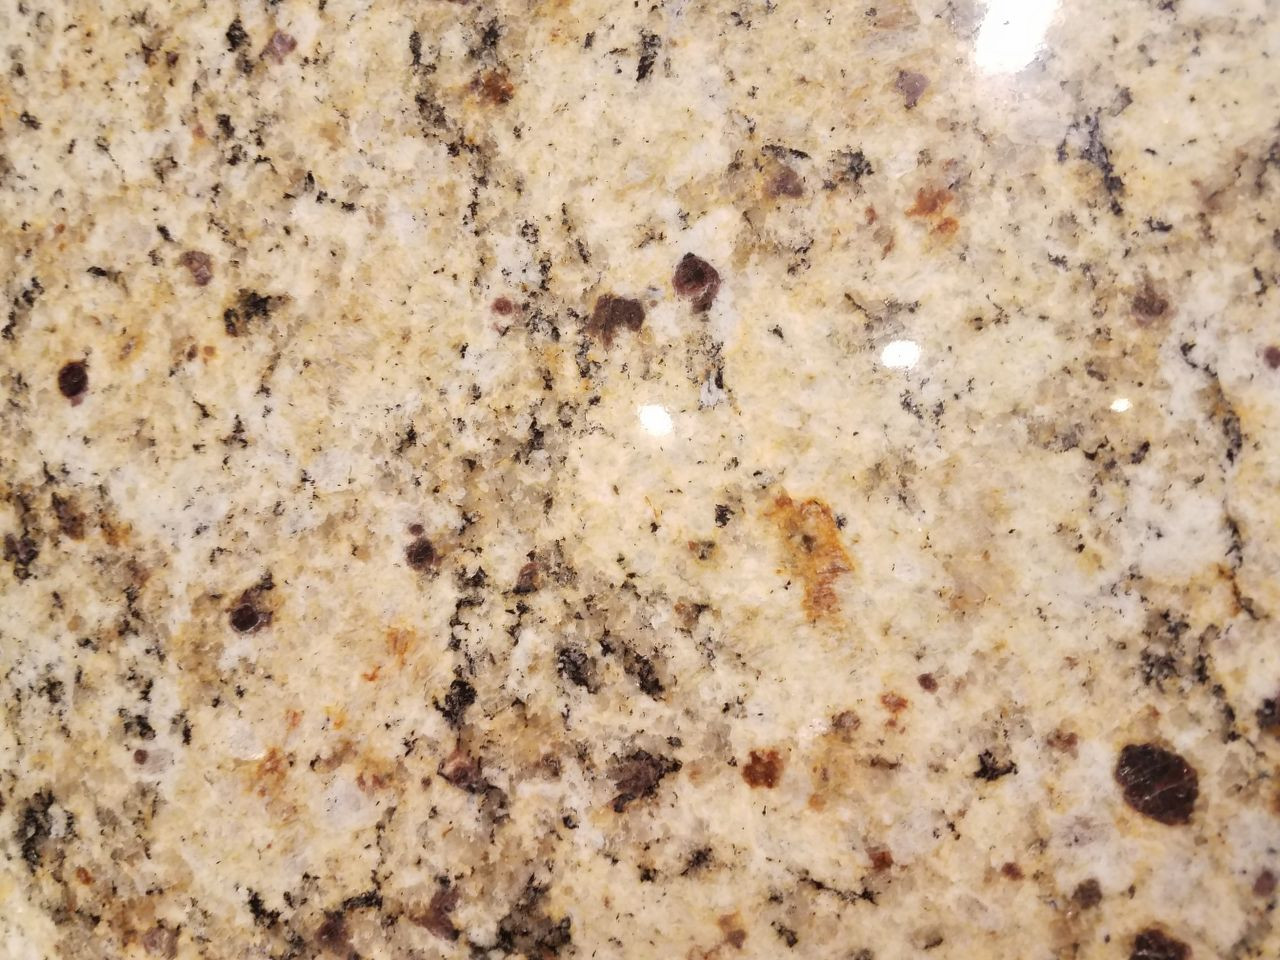 MORE GRANITE COLORS